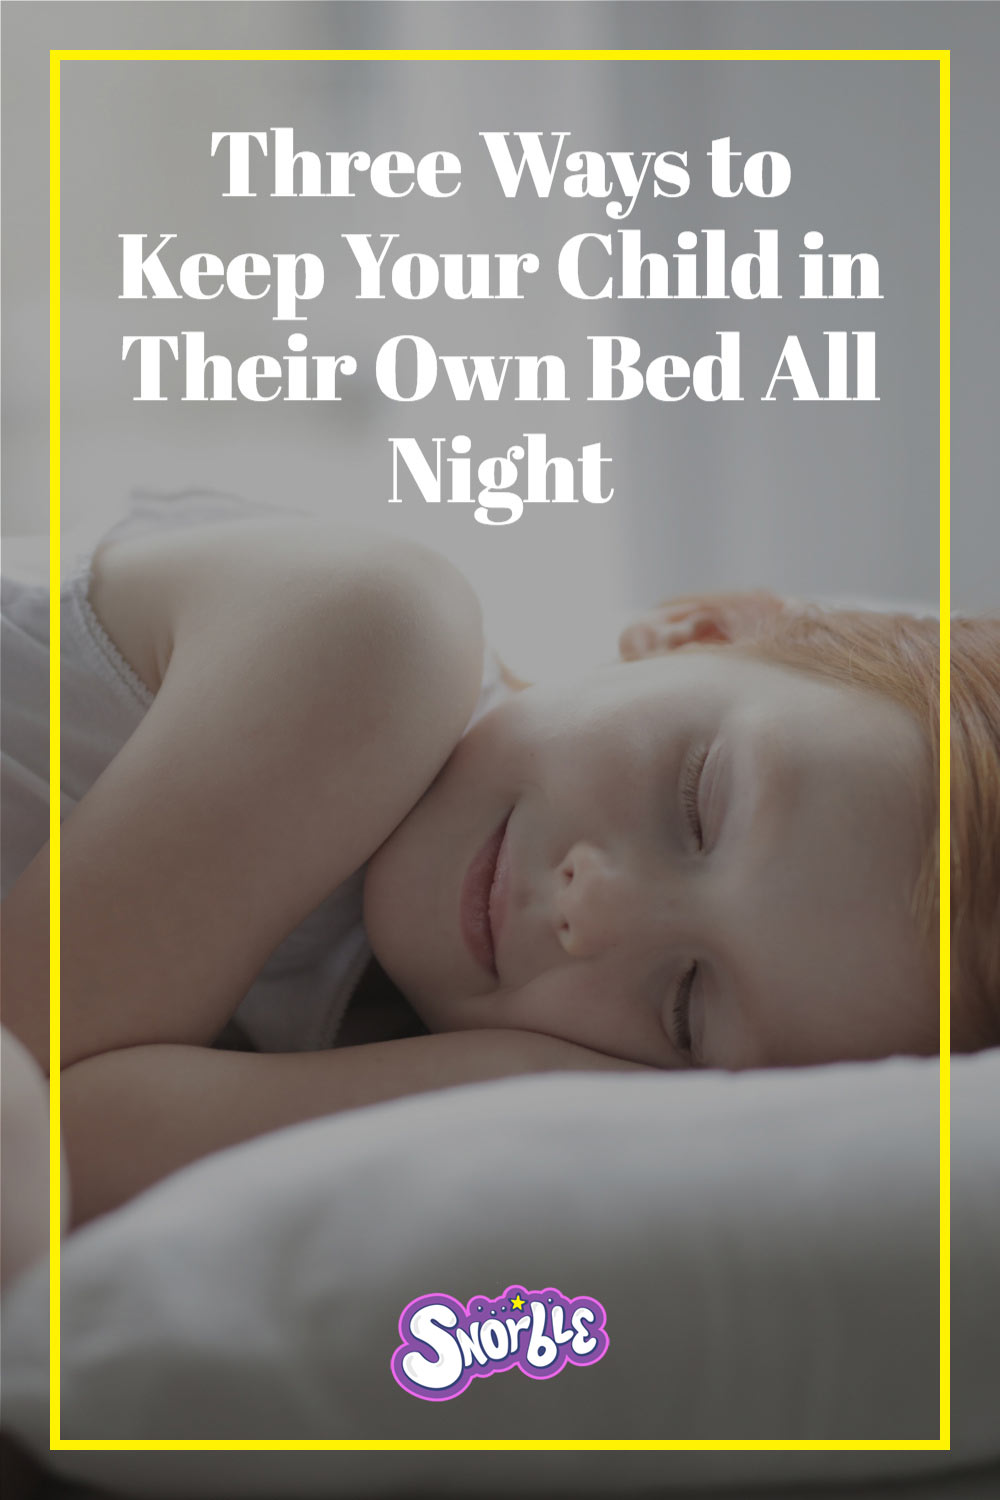 "Image contains a photo of a little girl sleeping in the background. In the foreground, there is a thin yellow line forming a rectangle with white text placed inside it at the top. The white text says ""Three Ways to Keep Your Child in Their Own Bed All Night"". At the bottom of the image, but still within the rectangle, there is a logo that says ""Snorble"" in a bubbly font."